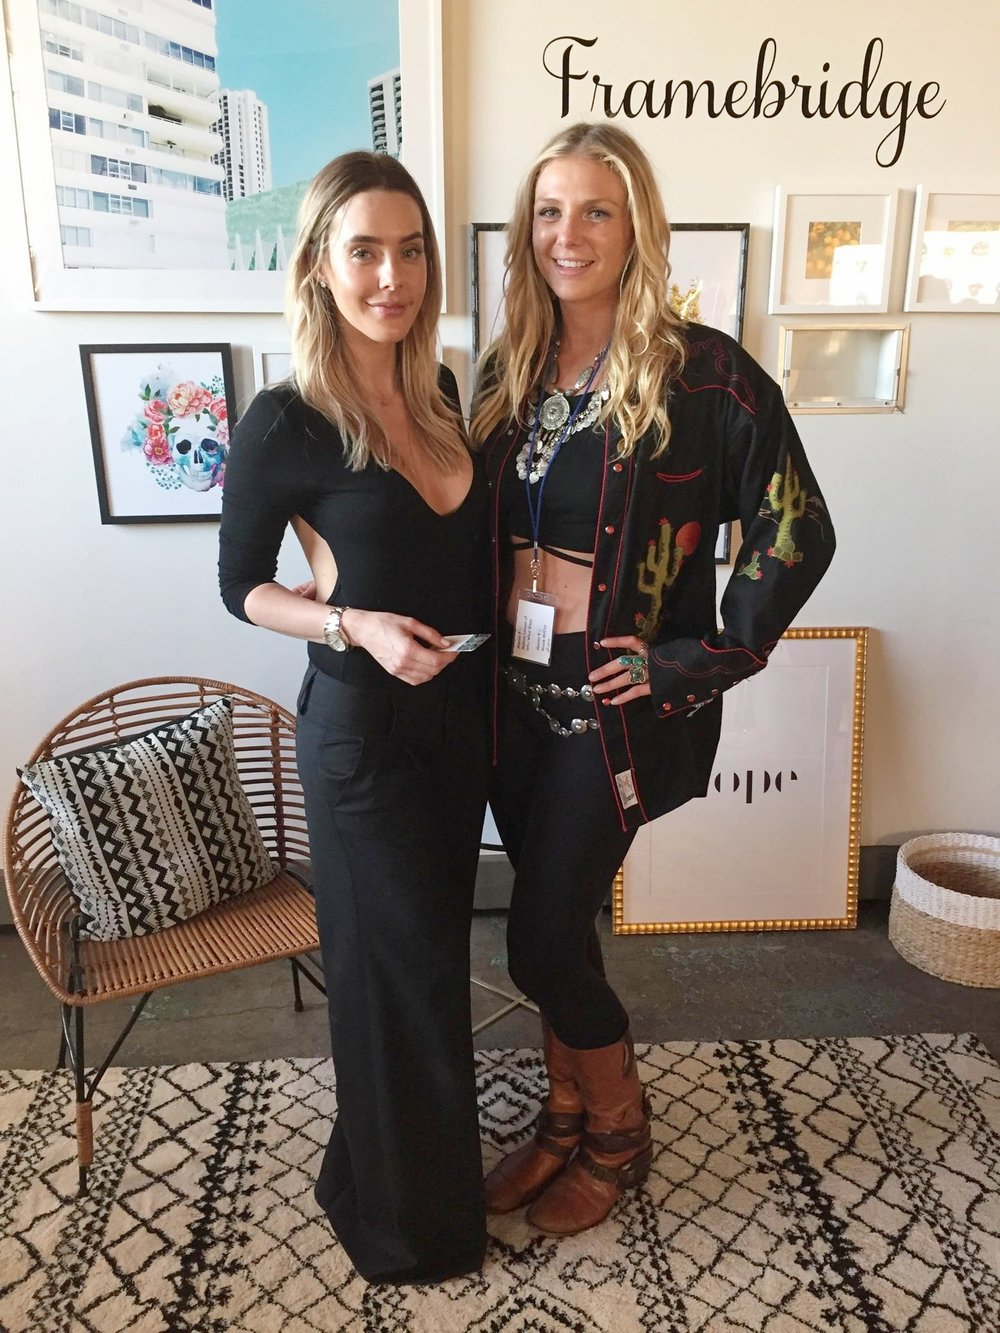 Met this beauty and business-blogger powerhouse  Lauryn Evarts  of  The Skinny Confidential . Can't wait to see what kind of magic she will be making next!